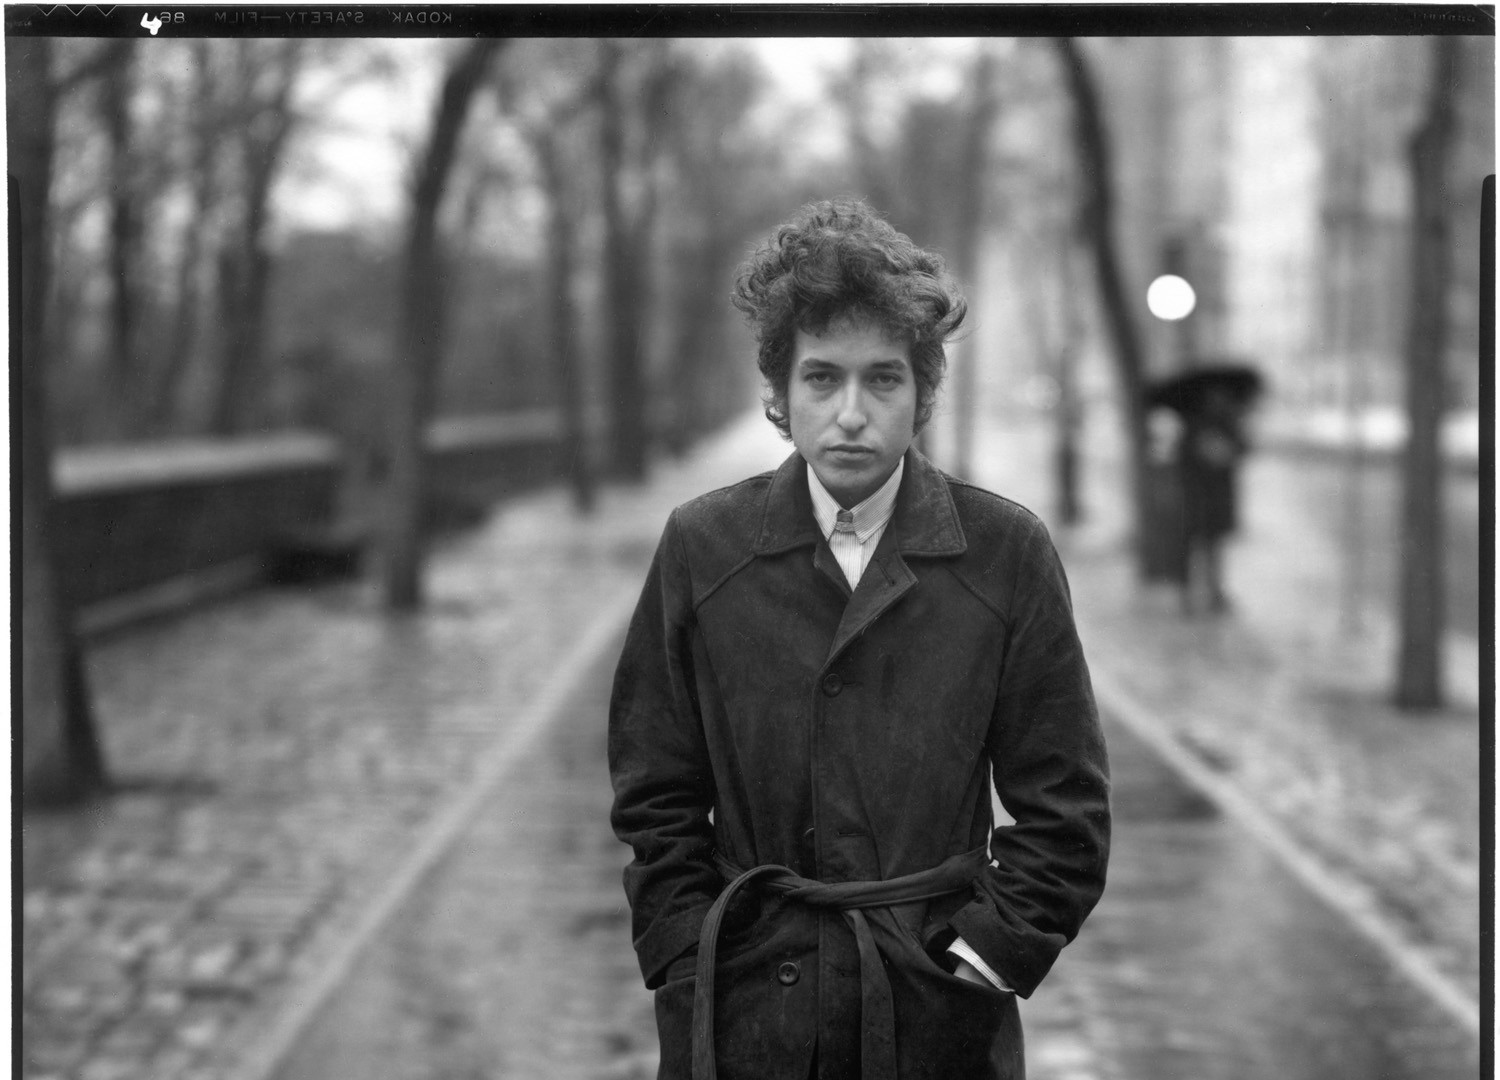 Richard Avedon, Bob Dylan, singer, New York City, February 10, 1965